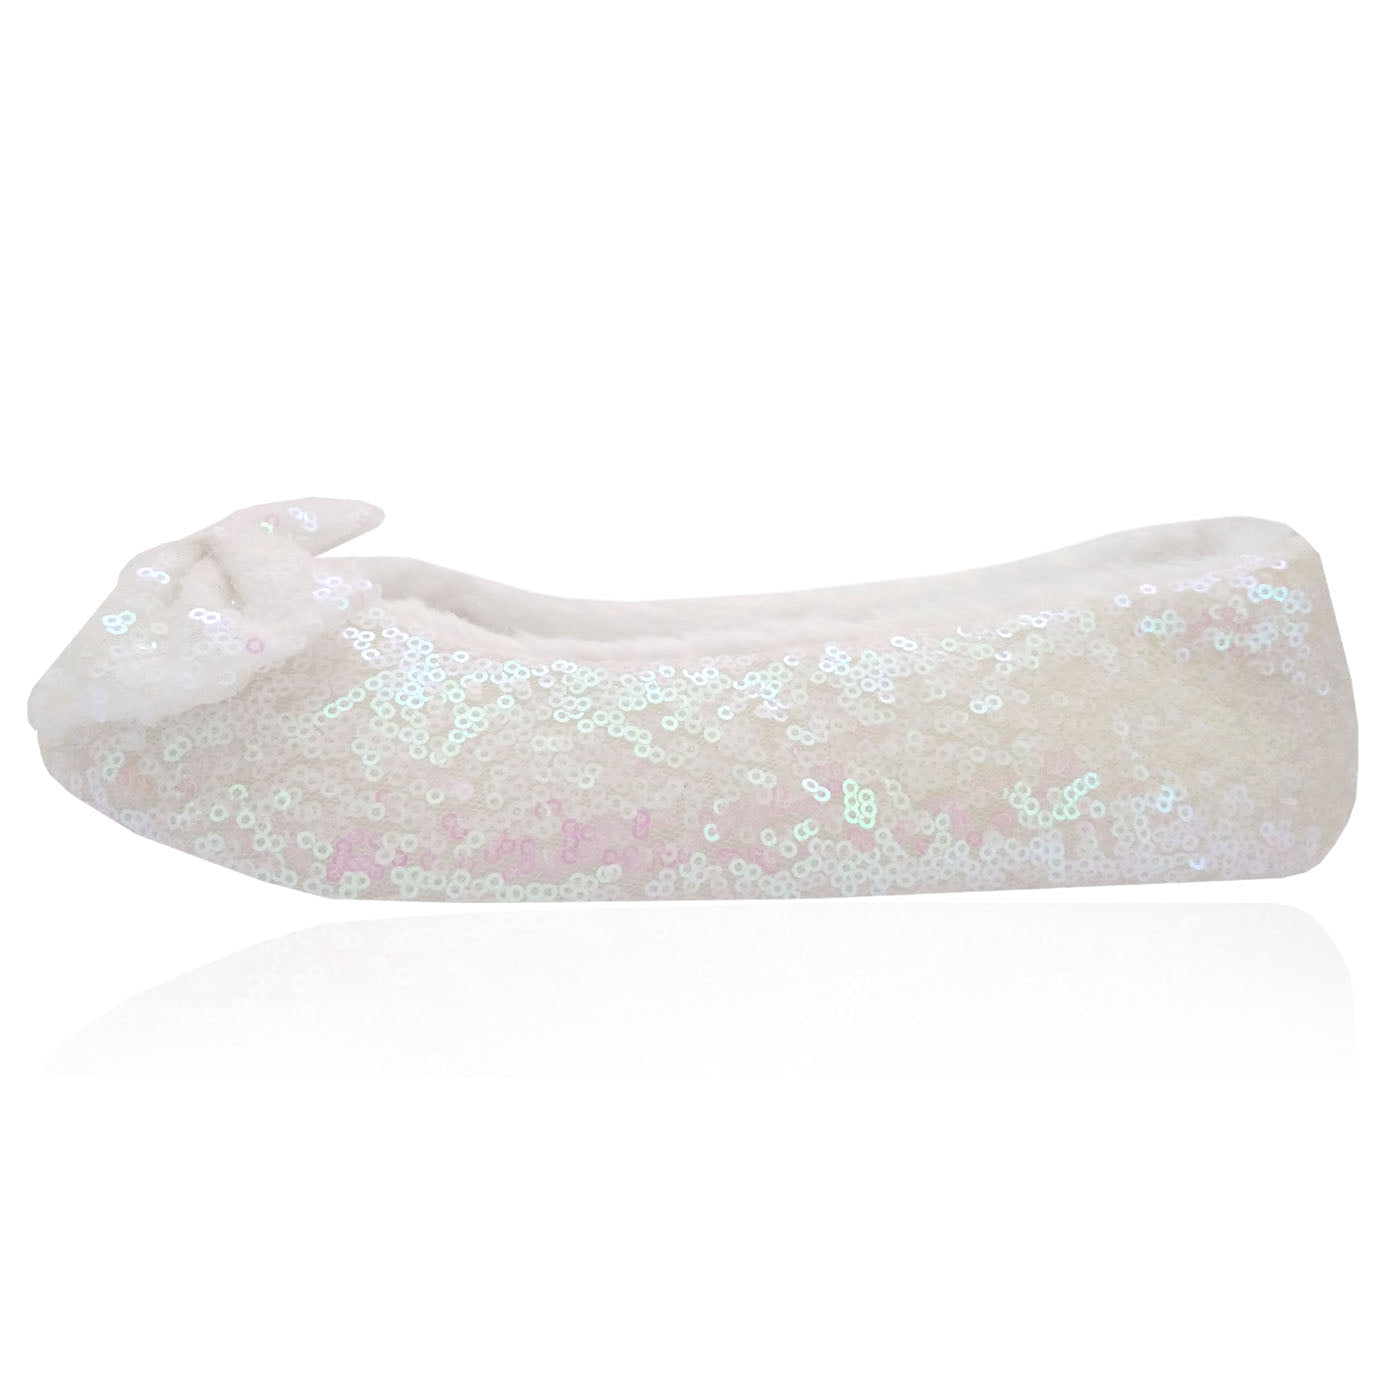 10 Pairs of luxury sequin slippers in a Party box